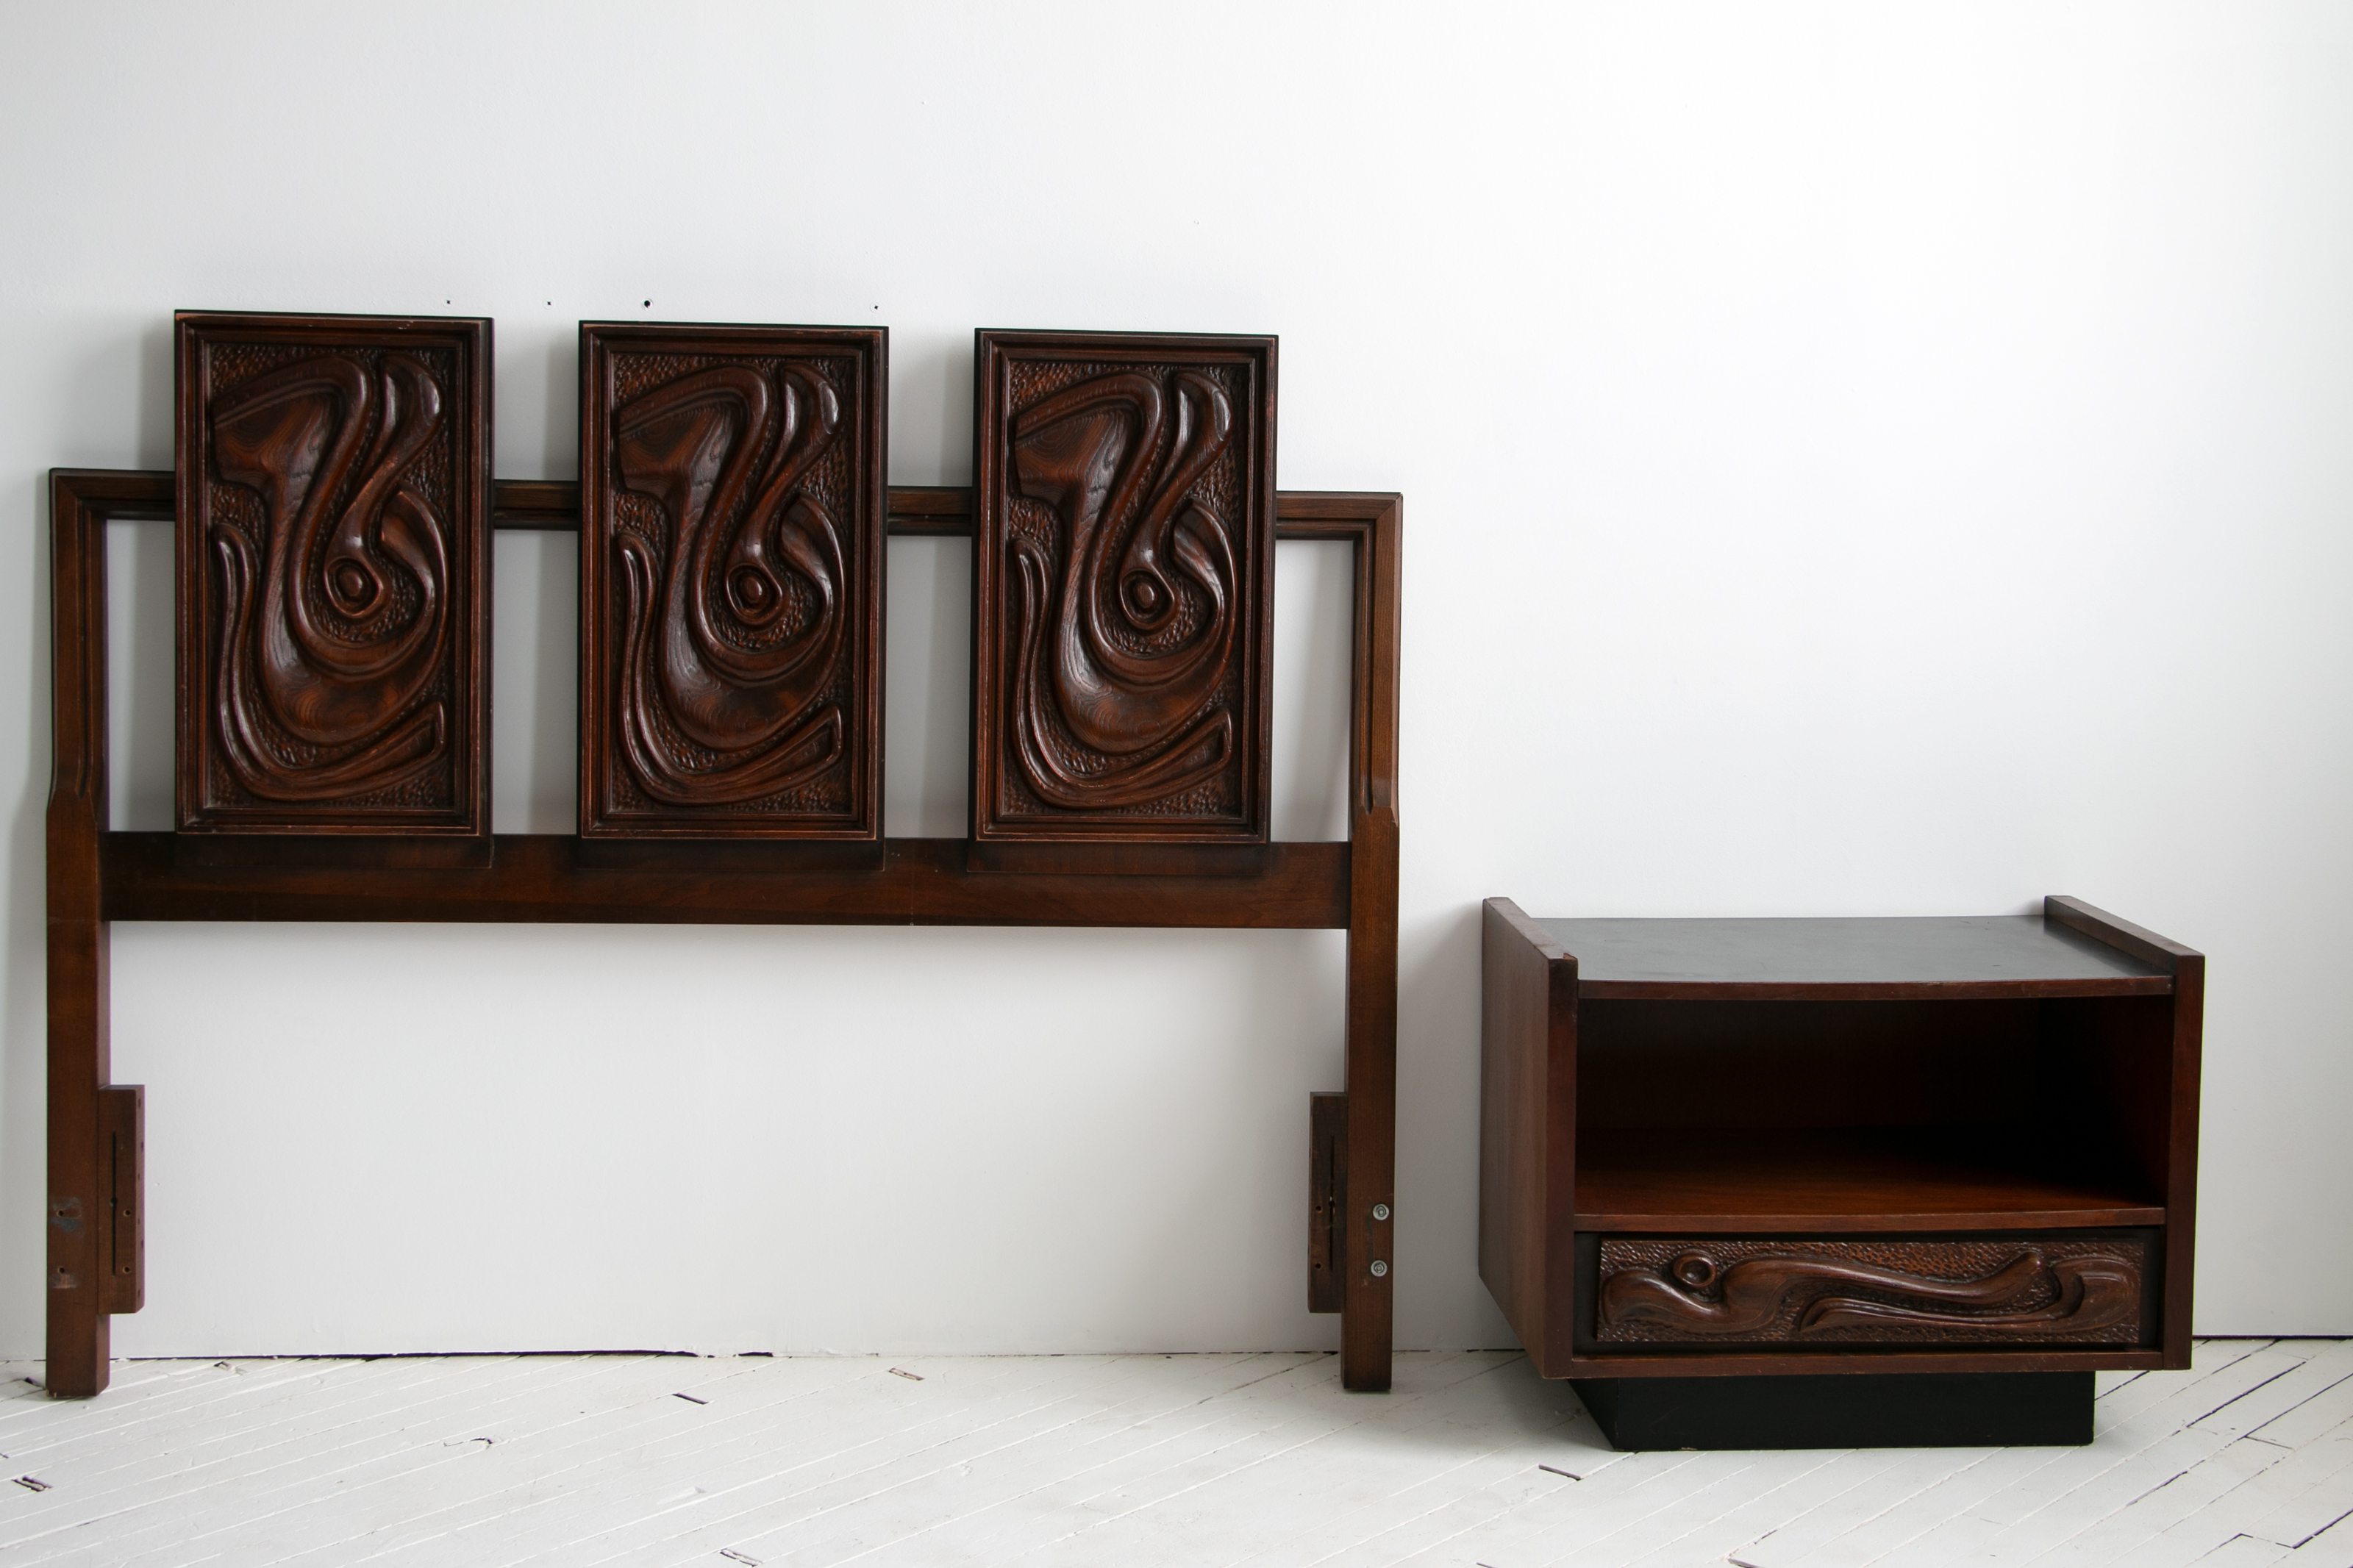 Queen Size Oceanic Tiki Headboard in the Style of Witco